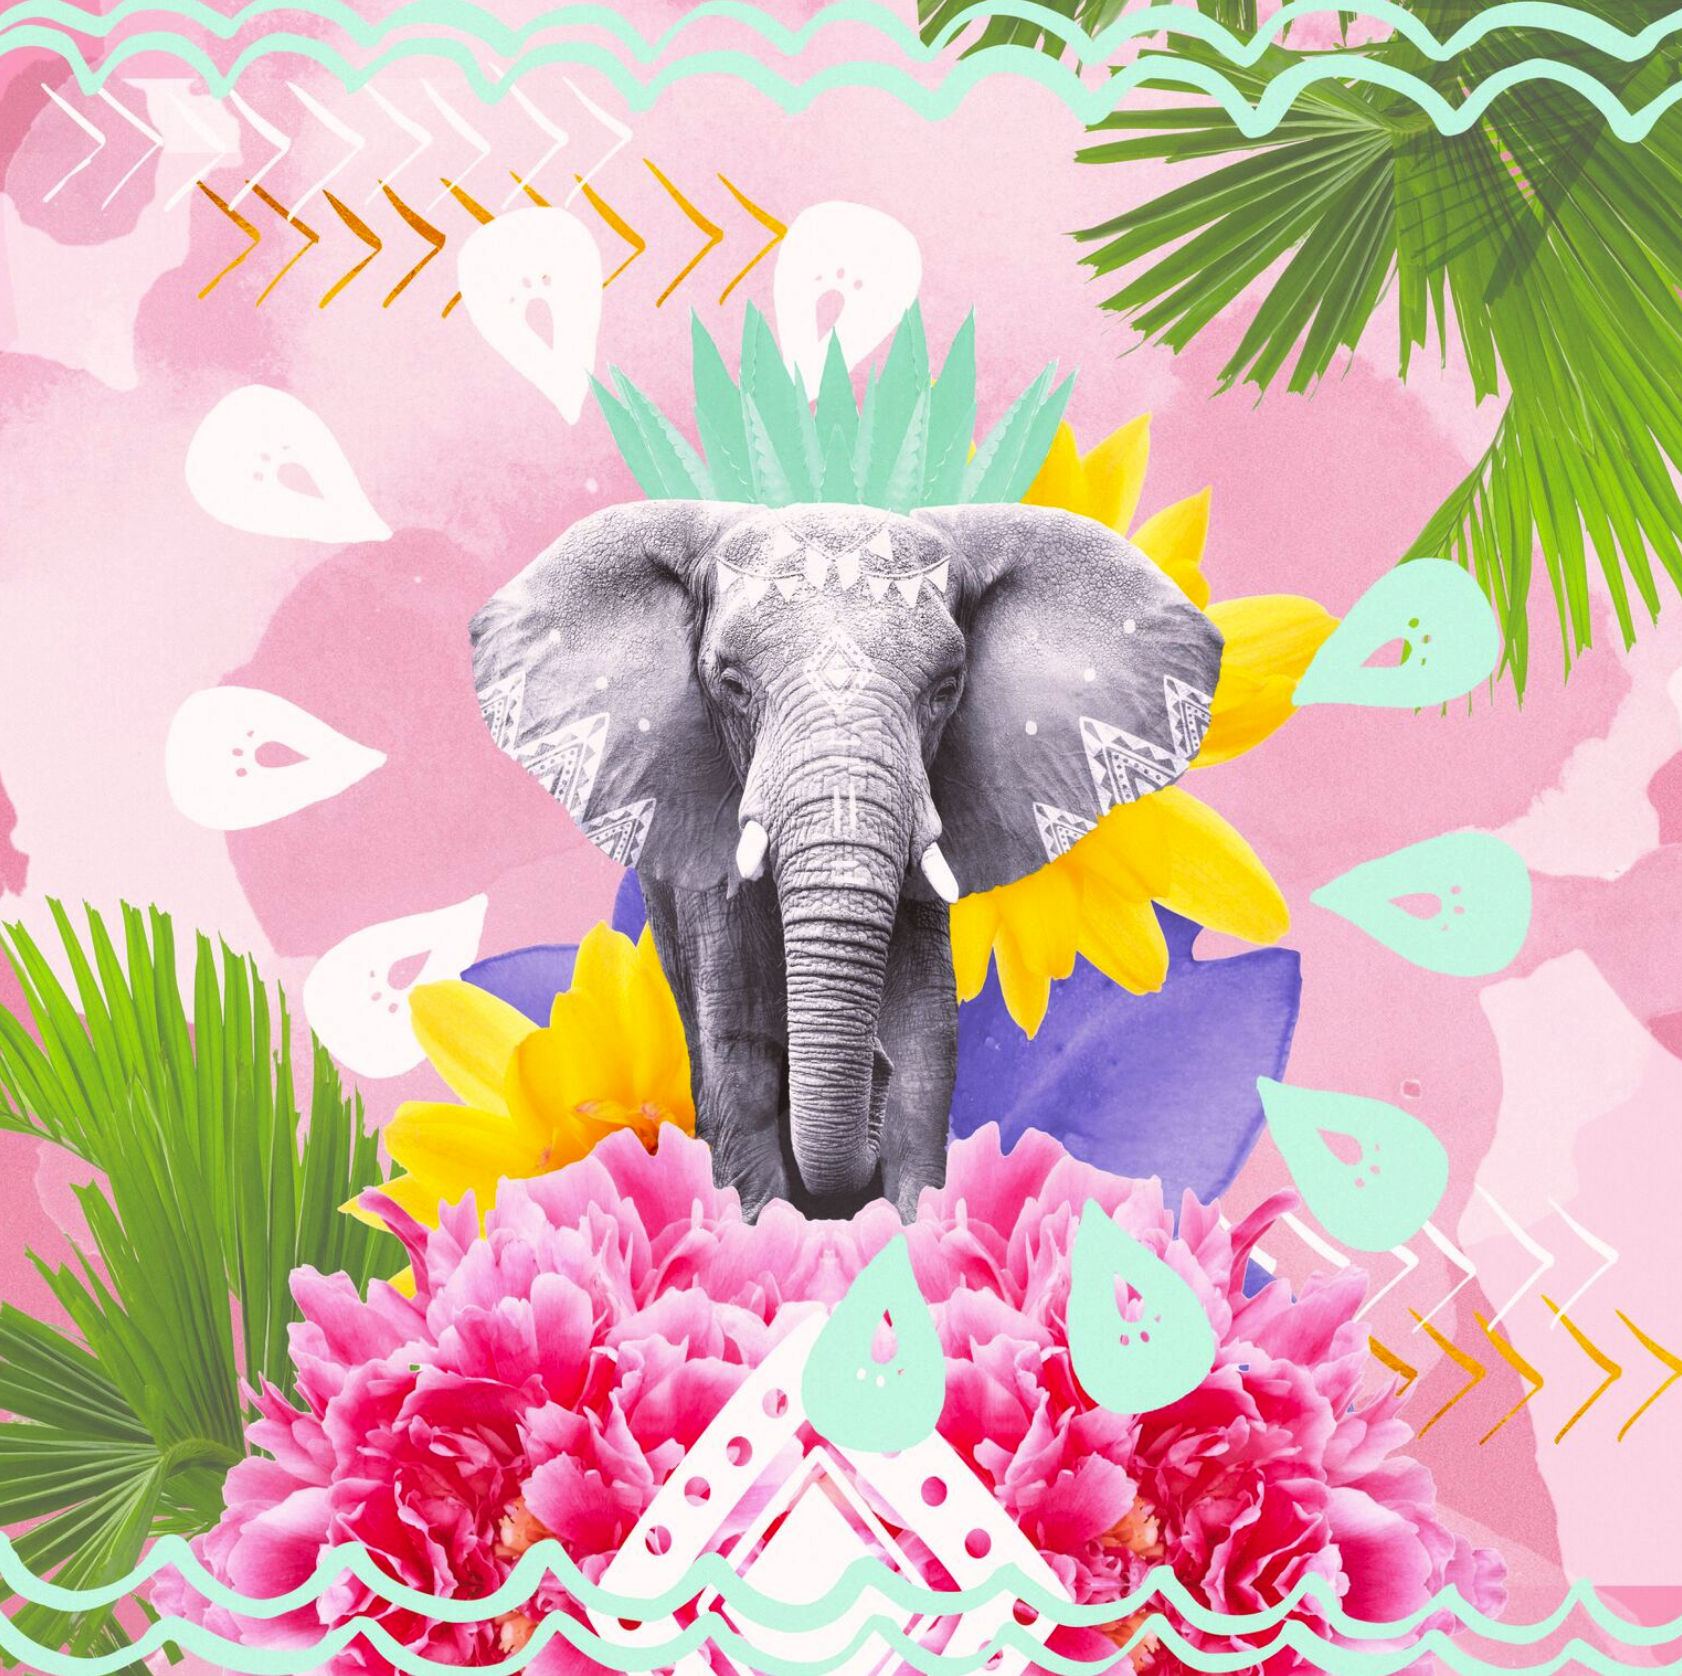 PROUD TEMBO    We all know that elephants are powerful and majestic, but in this design, Rui plays with the cheerful, jestful sides of these Kings of the Savannah with a whimsical starburst of flora and symbols. Through visually dynamic elements, she considers the balance, even mutual respect, between this natural king and his kingdom.